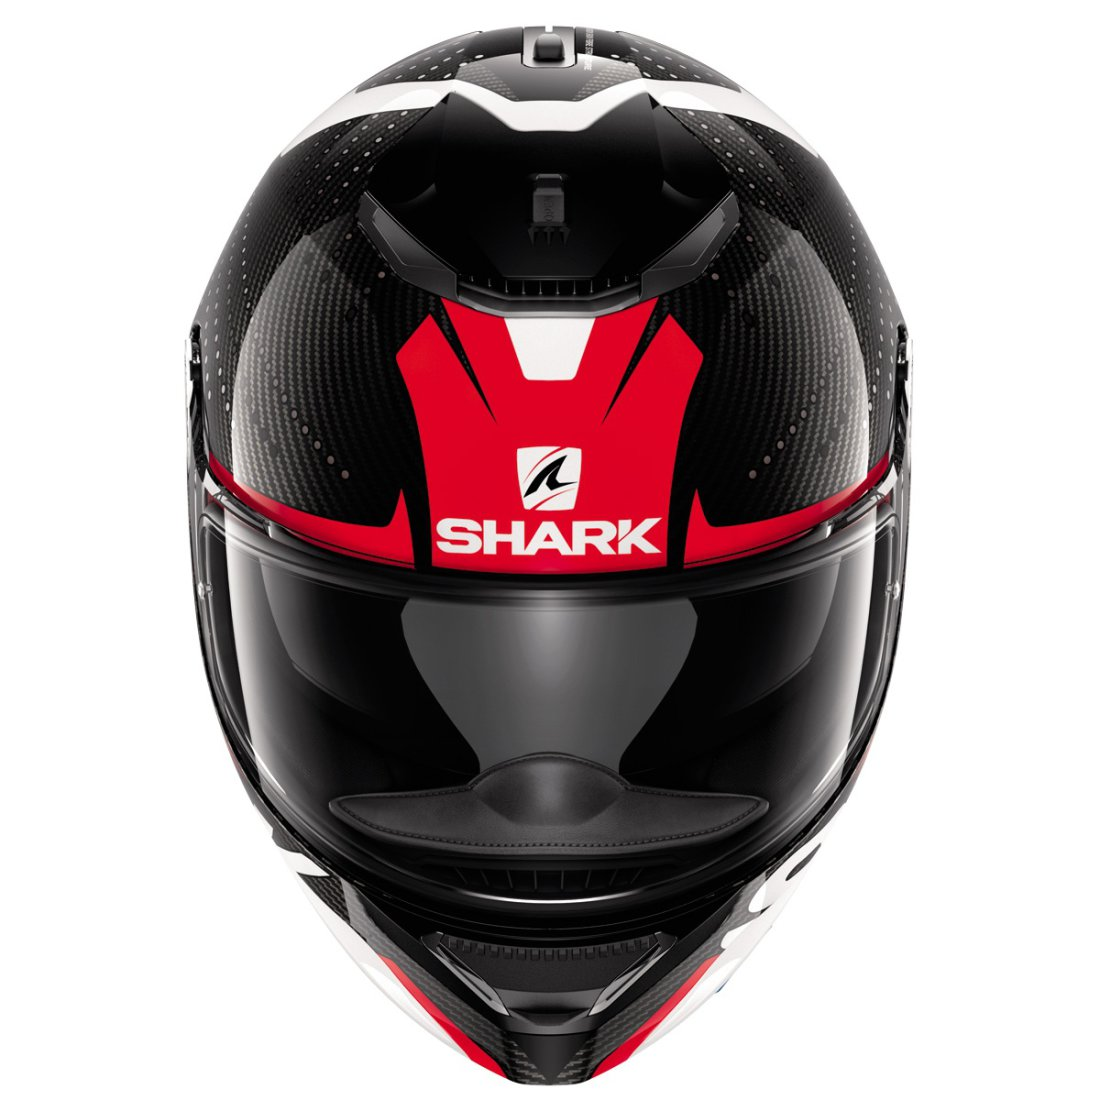 casque shark spartan carbon cliff carbon red white motocard. Black Bedroom Furniture Sets. Home Design Ideas